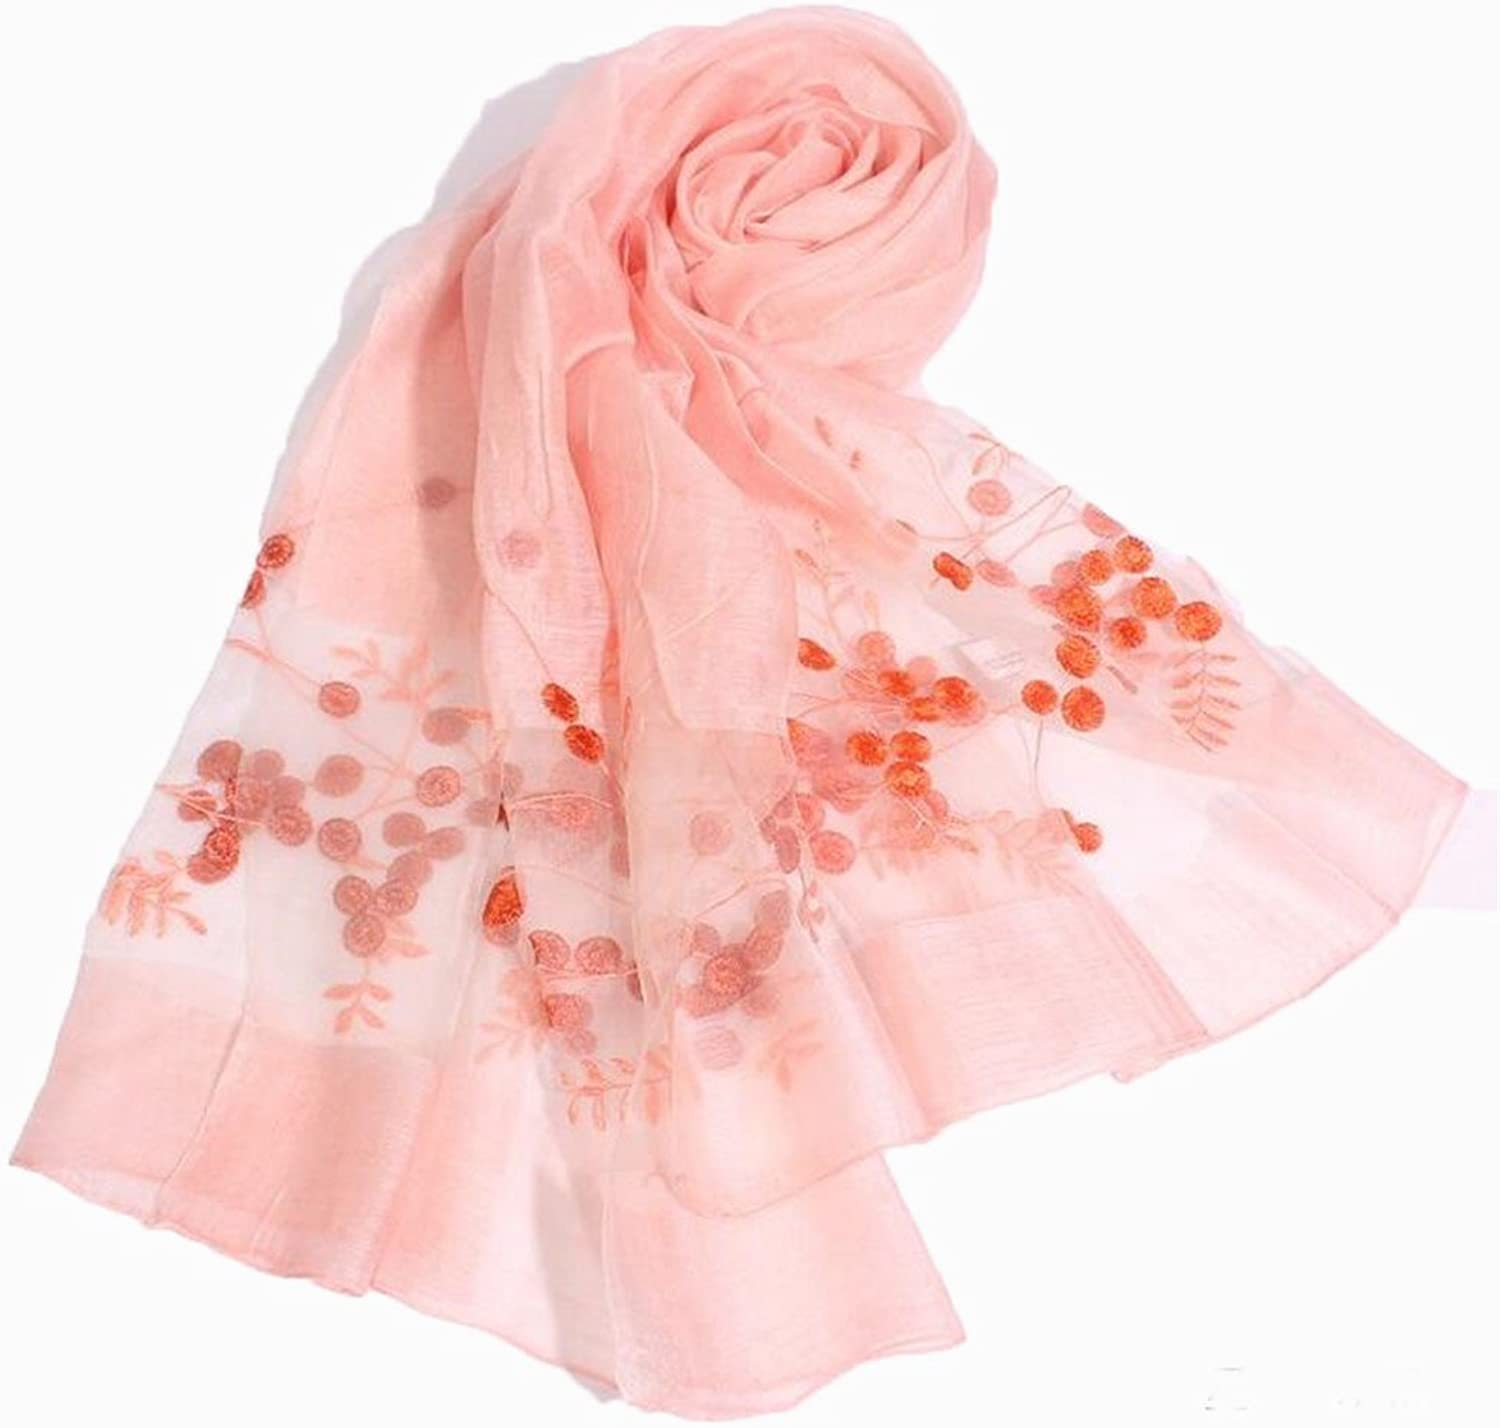 Women's Scarf Light Transparent Embroidered Silk Scarf for Travel Party Wedding Dating Size,35  78 Inch (color   Pink)